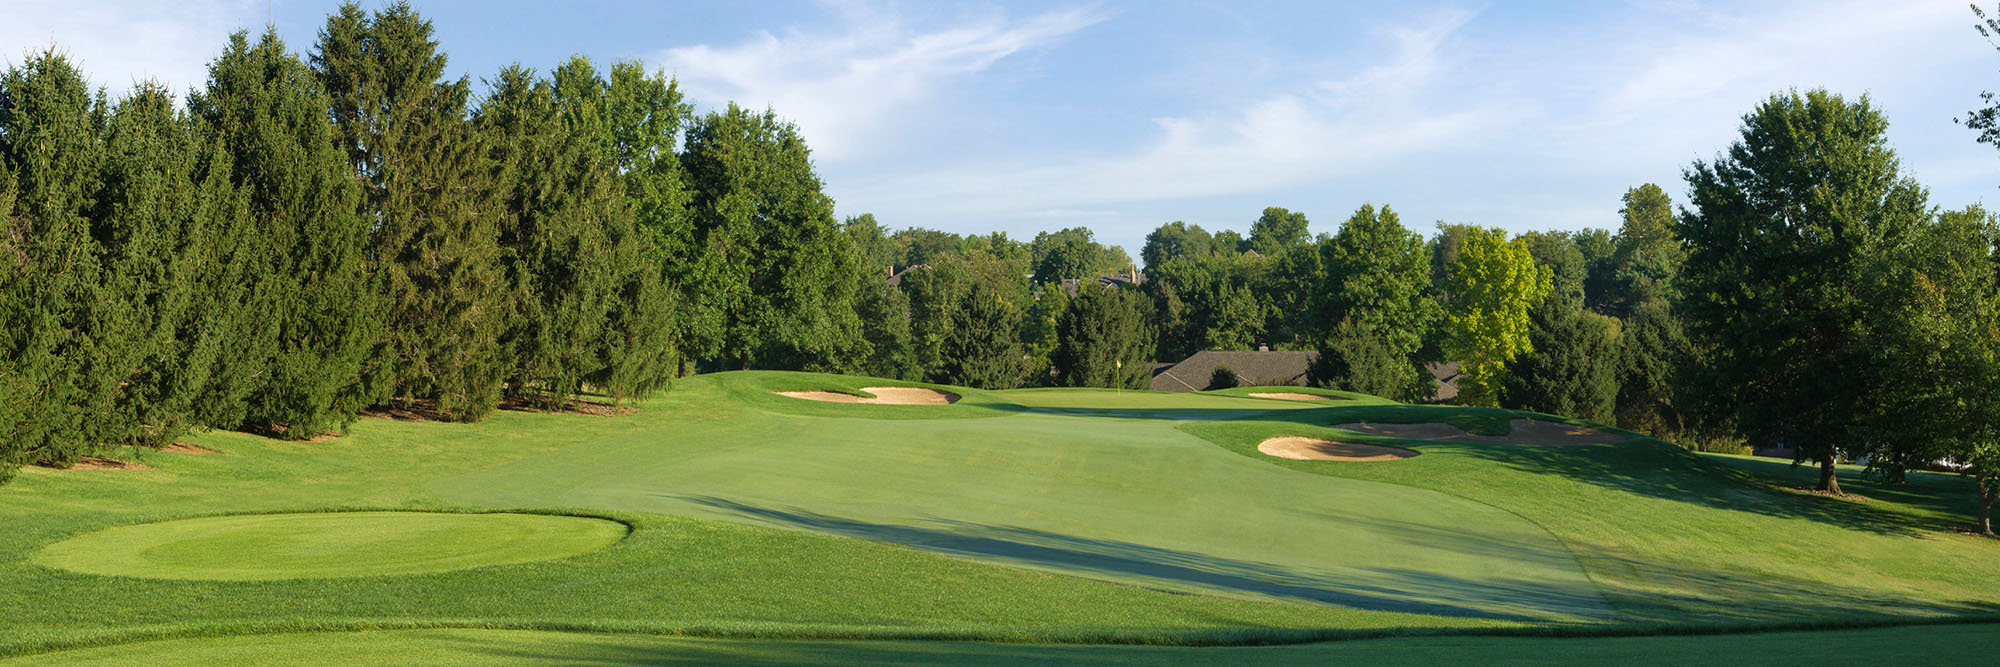 Golf Course Image - Hickory Hills No. 7